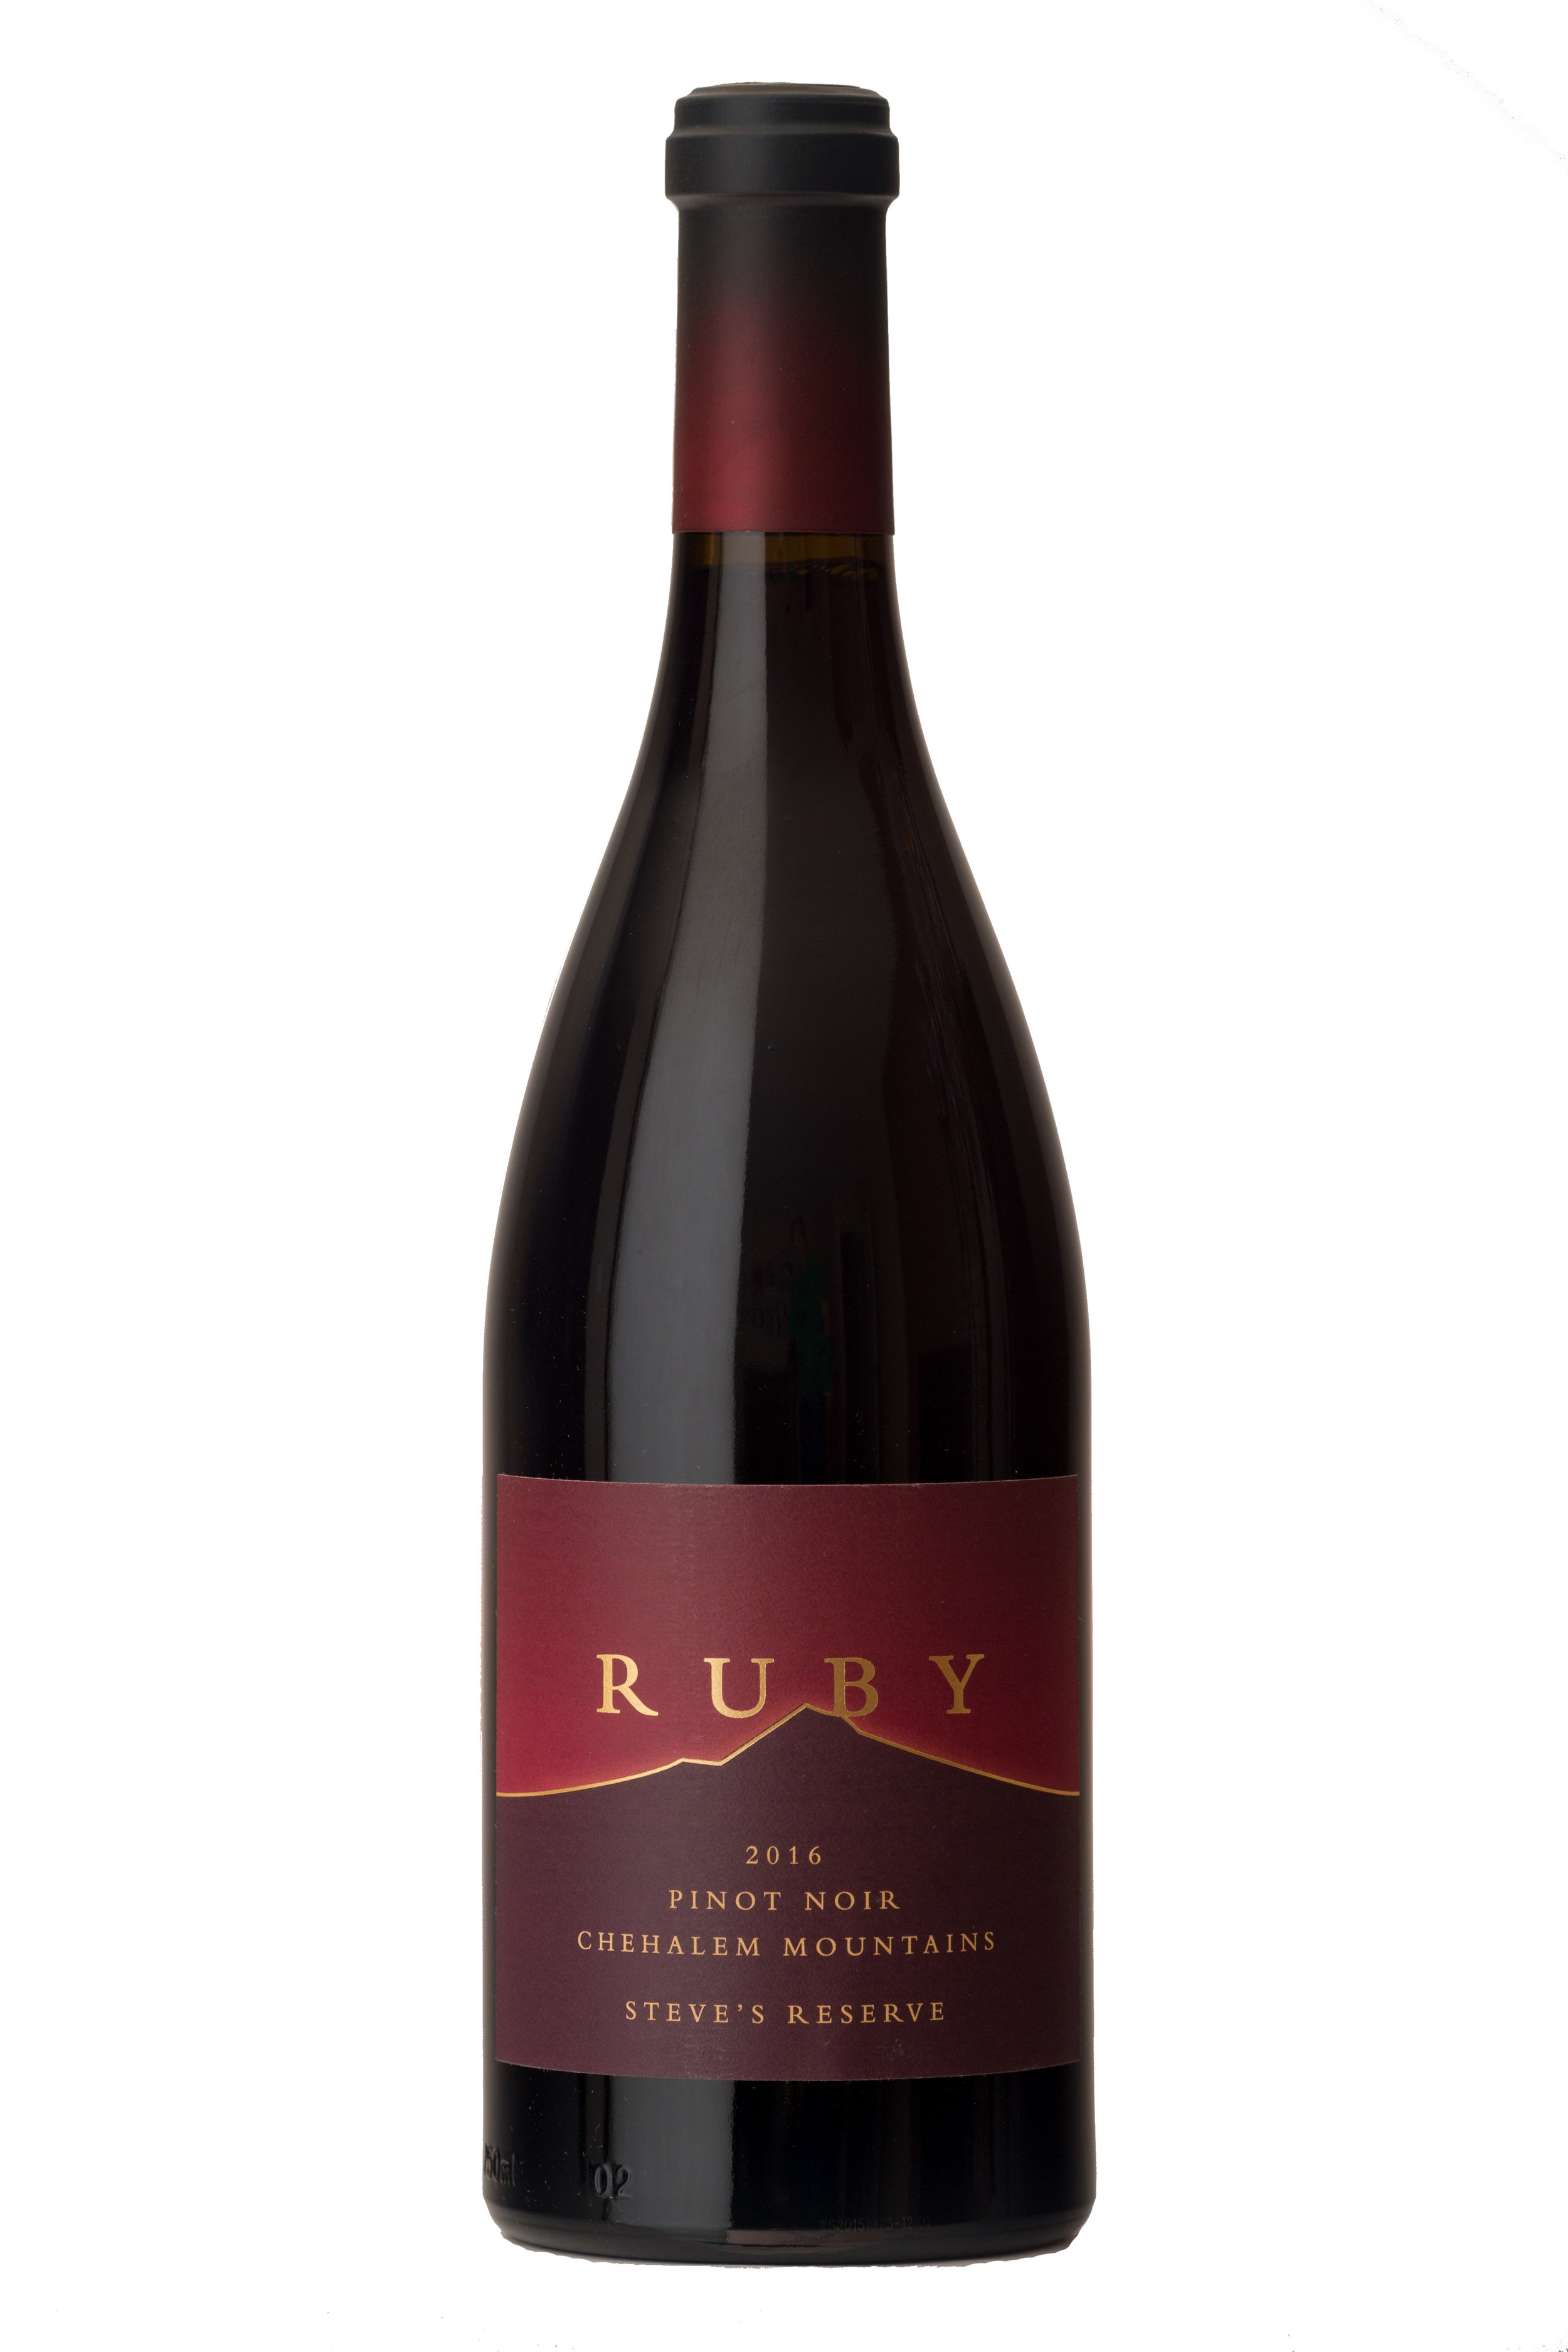 2016 Steve's Reserve Pinot Noir - A selection of six barrels made by Ruby co-owner Steve Hendricks. This Pinot Noir is a big and bold expression of Laurelwood soils.$60